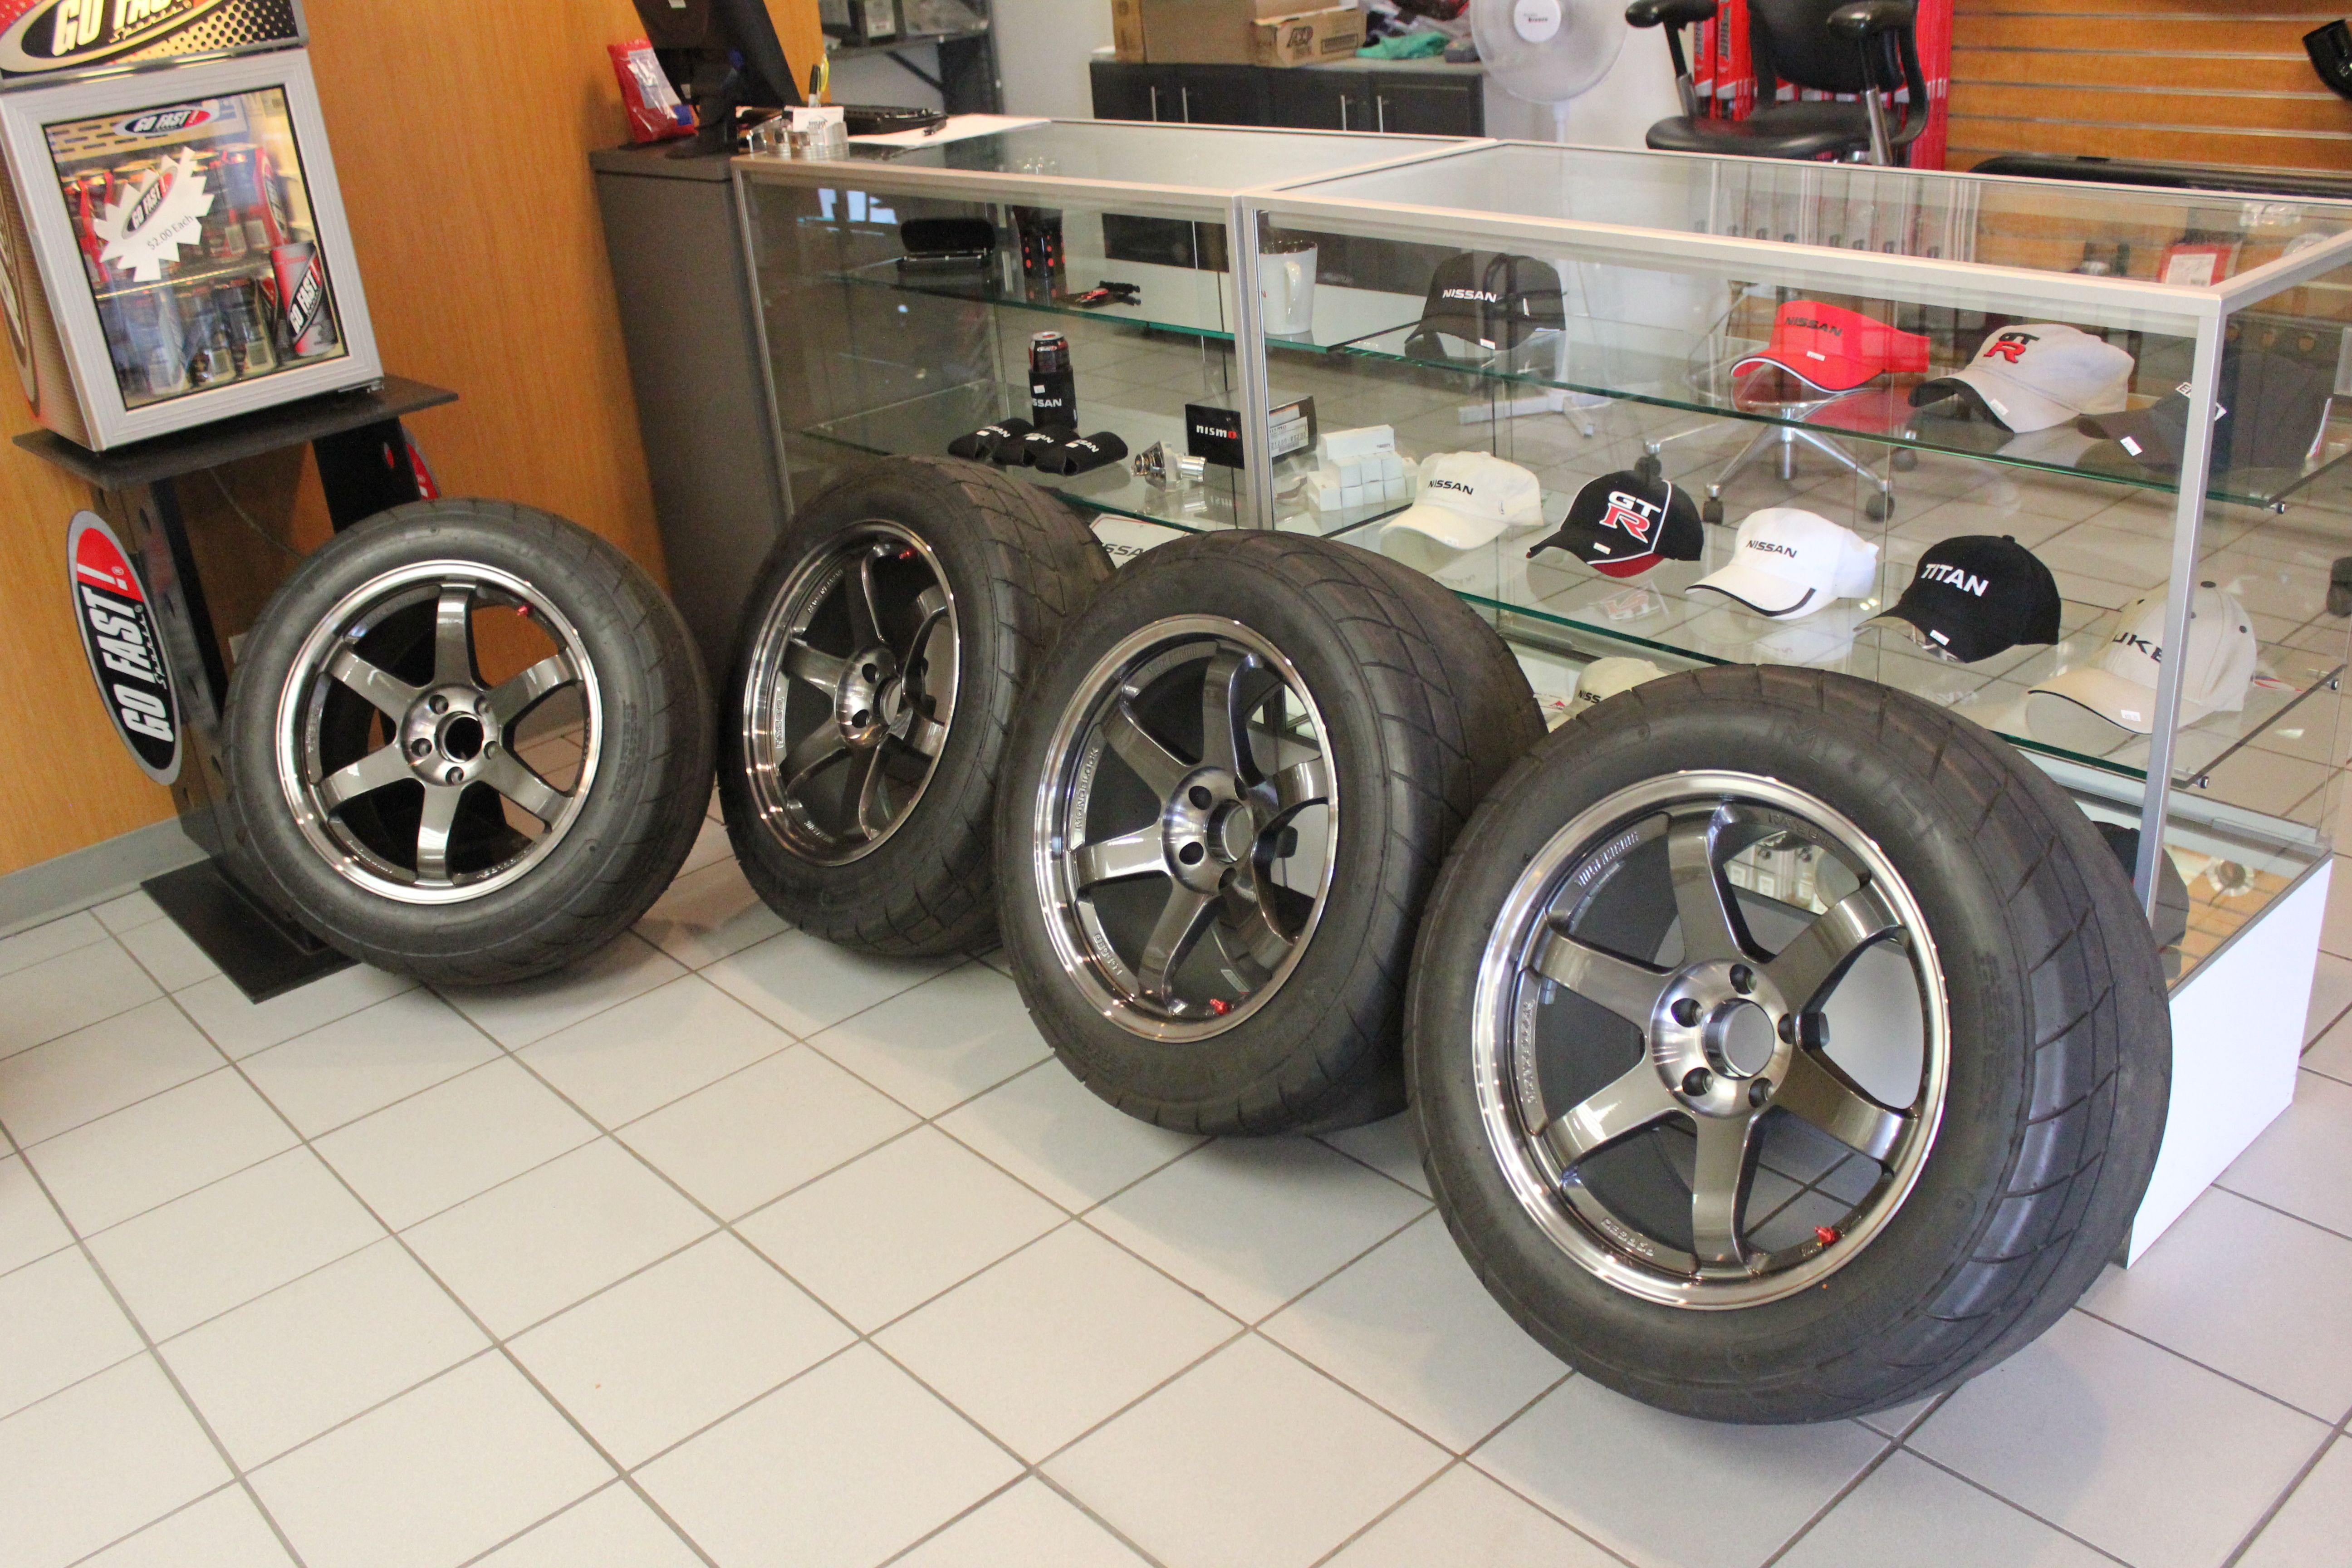 Drag radials for sale - Posted Image